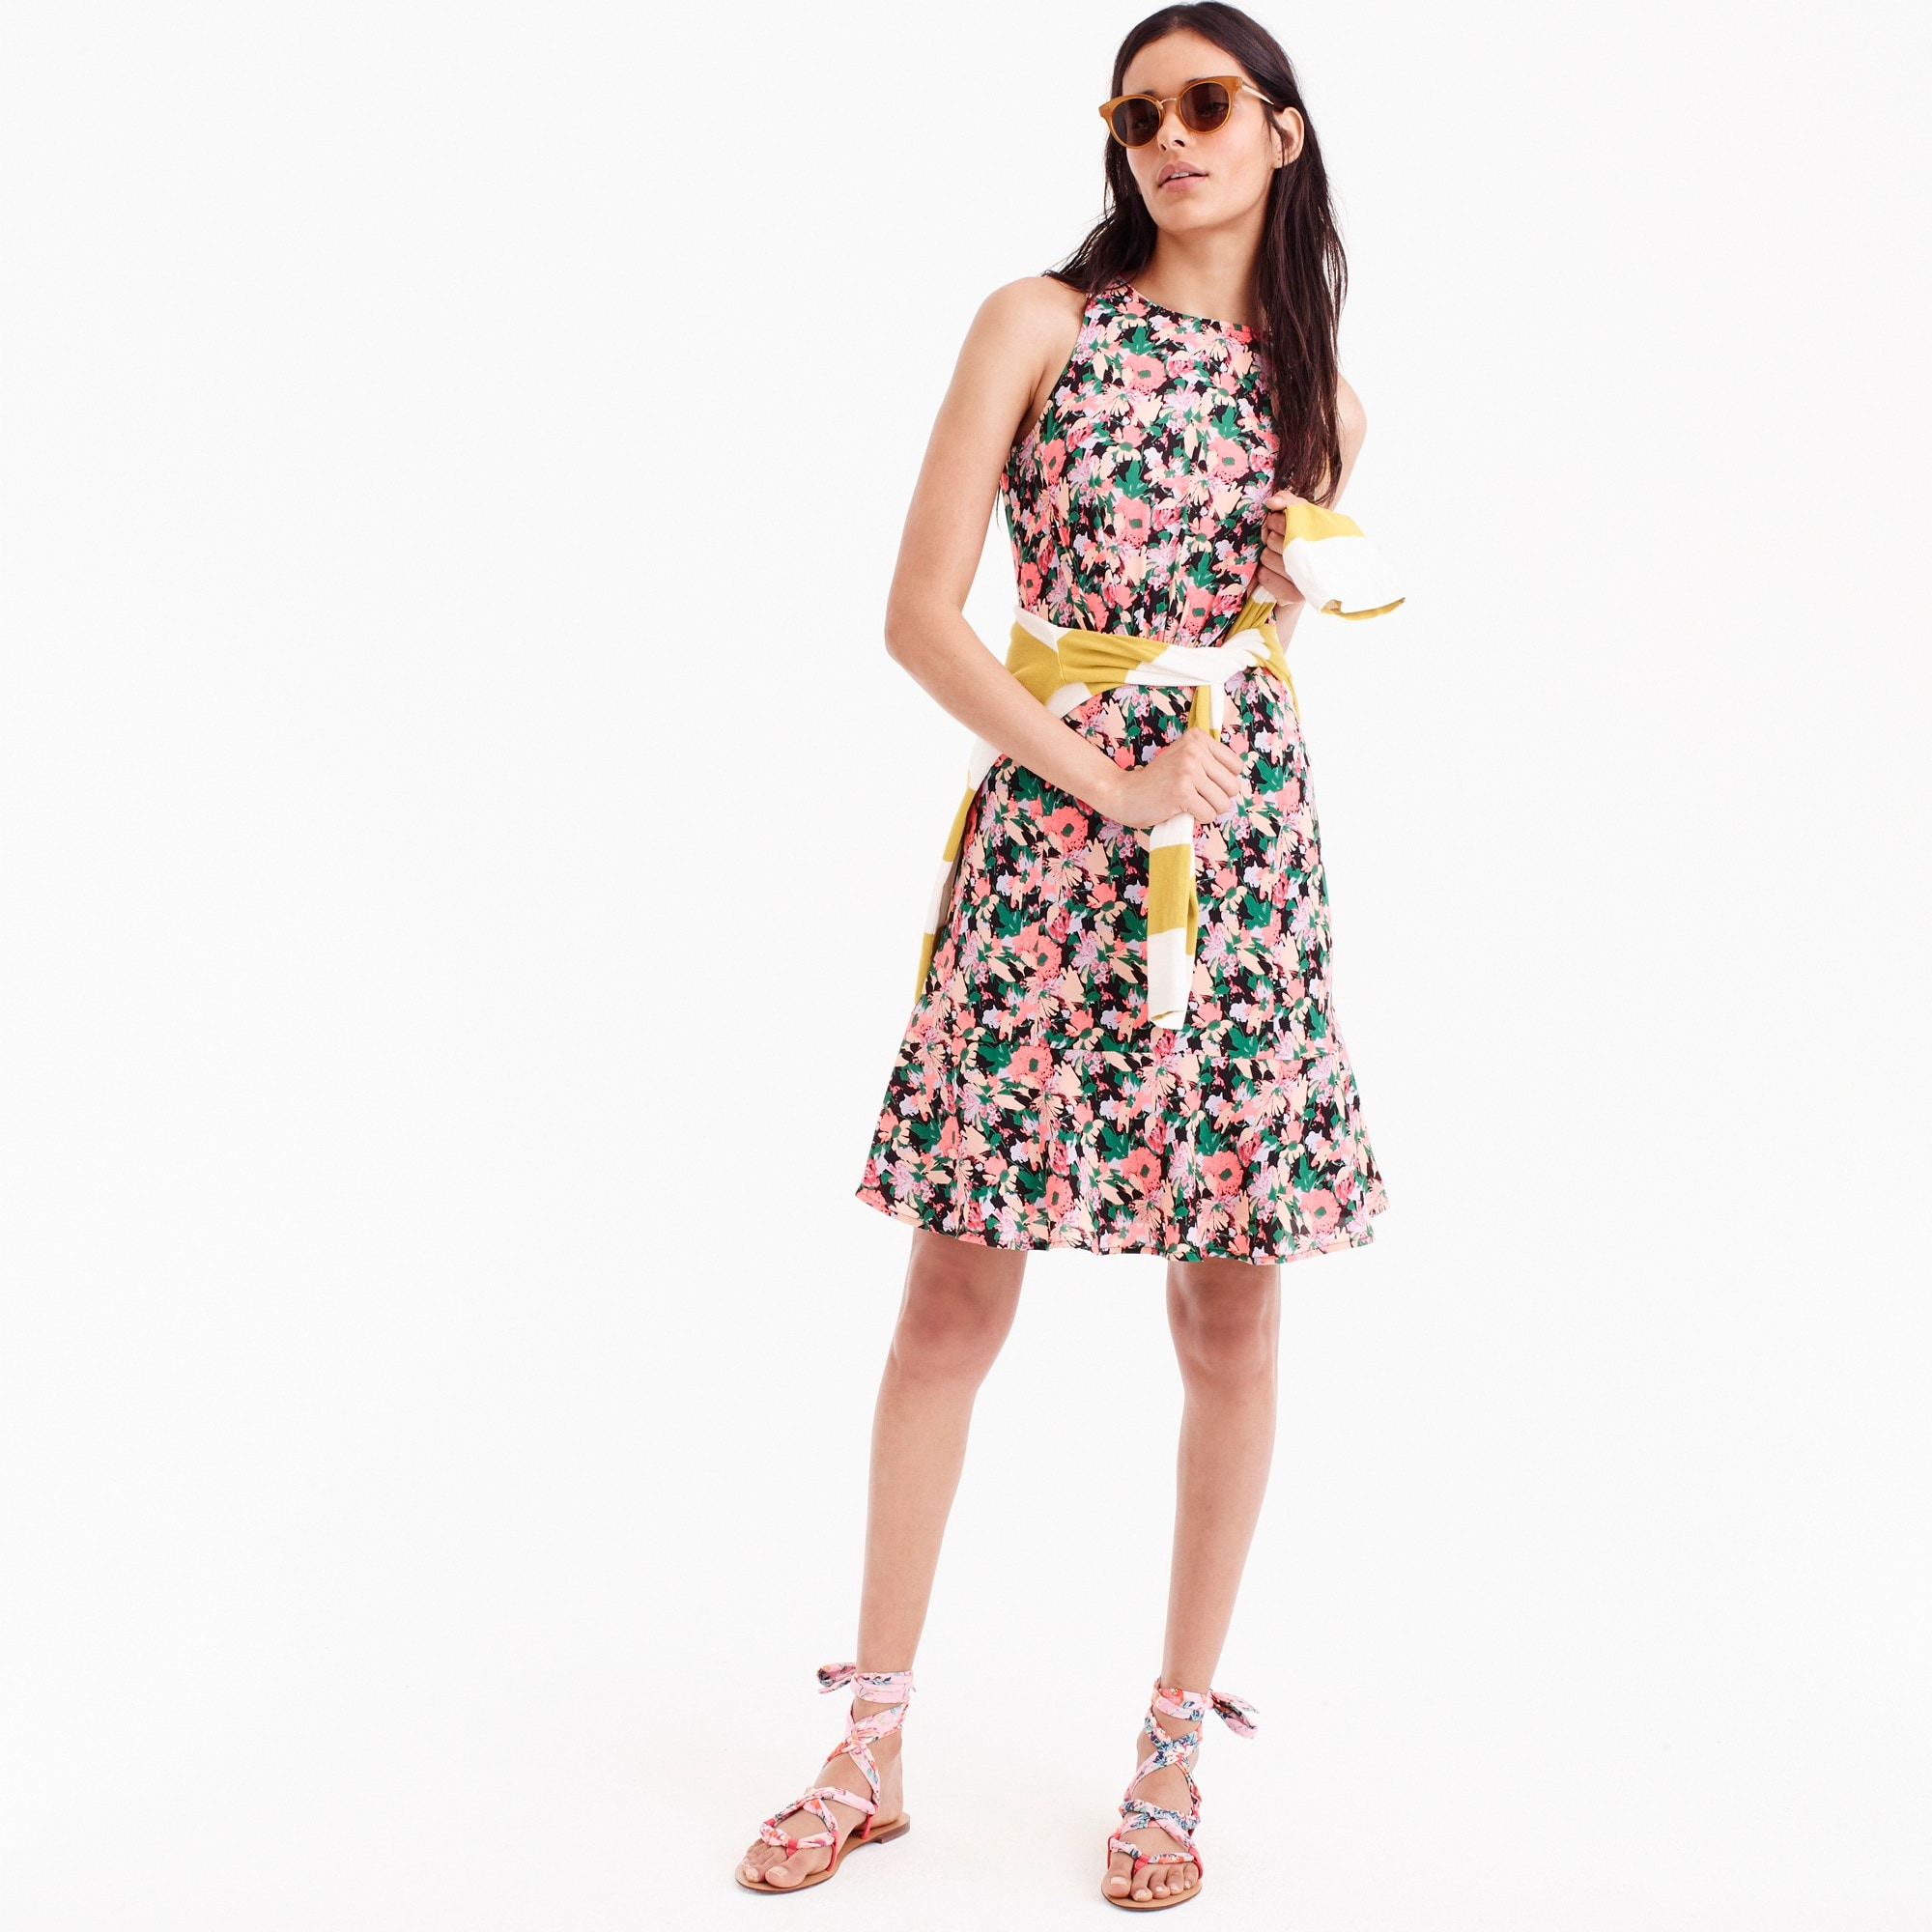 J.Crew Mercantile ruched-waist dress in neon floral women dresses c